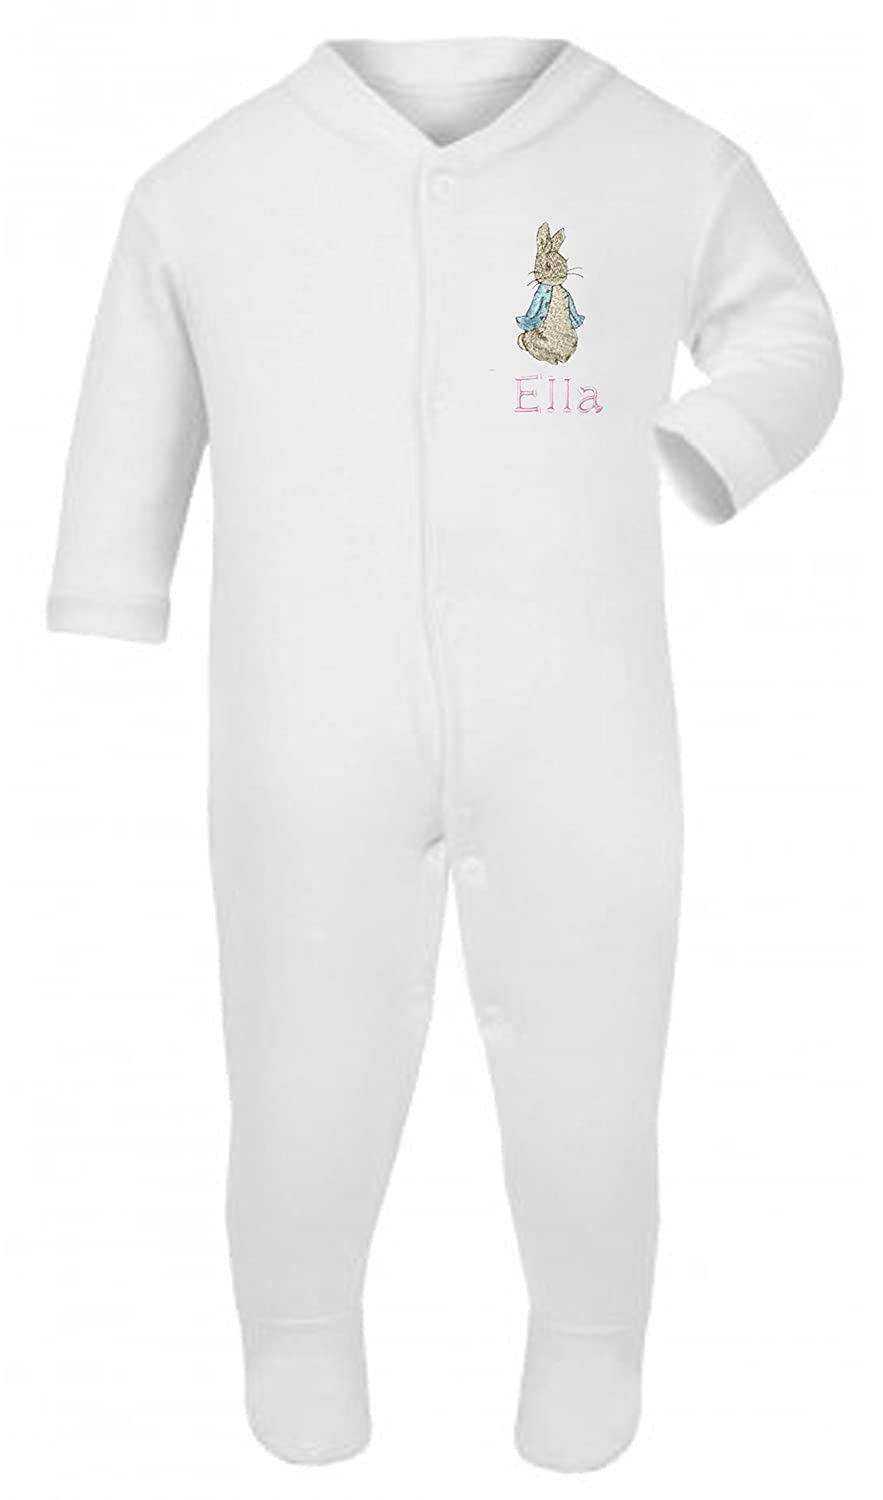 Girls Personalised Peter The Rabbit Tiny Baby/New Born Baby Grow/Sleepsuit - Now Available in to Sizes.